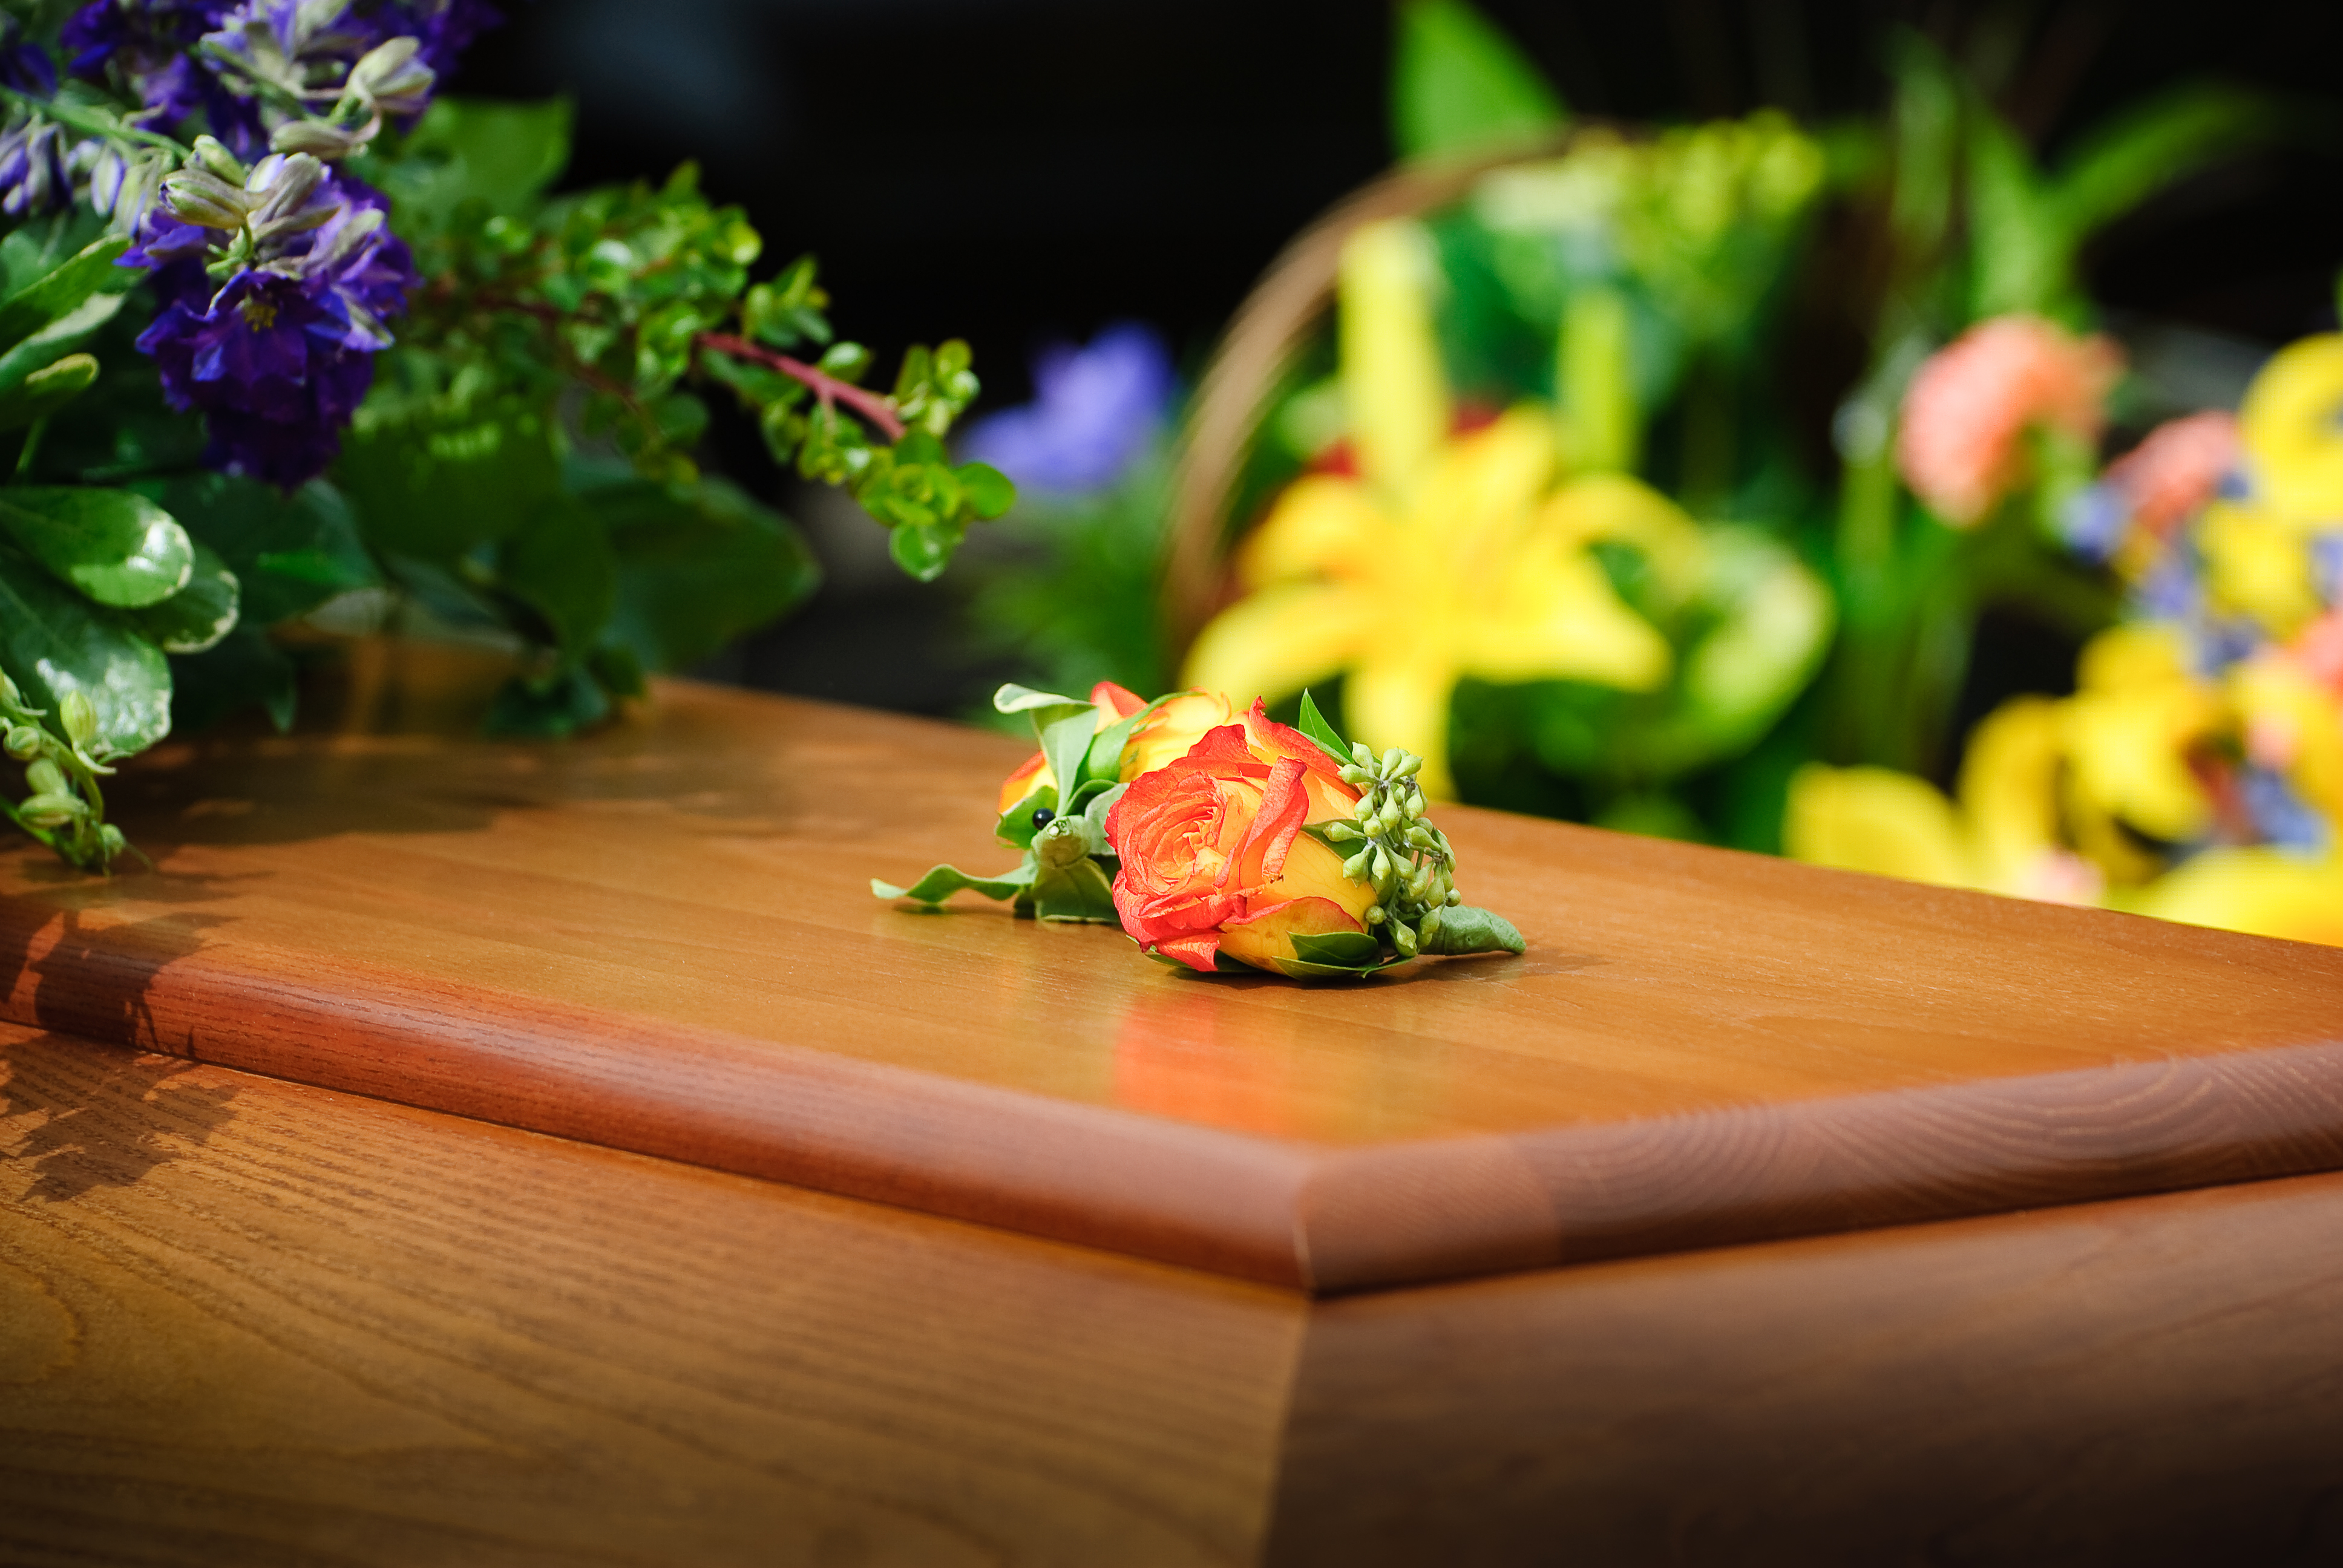 d iacute a de los muertos day of the dead org a rose resting on a wooden casket more flowers visible in the background